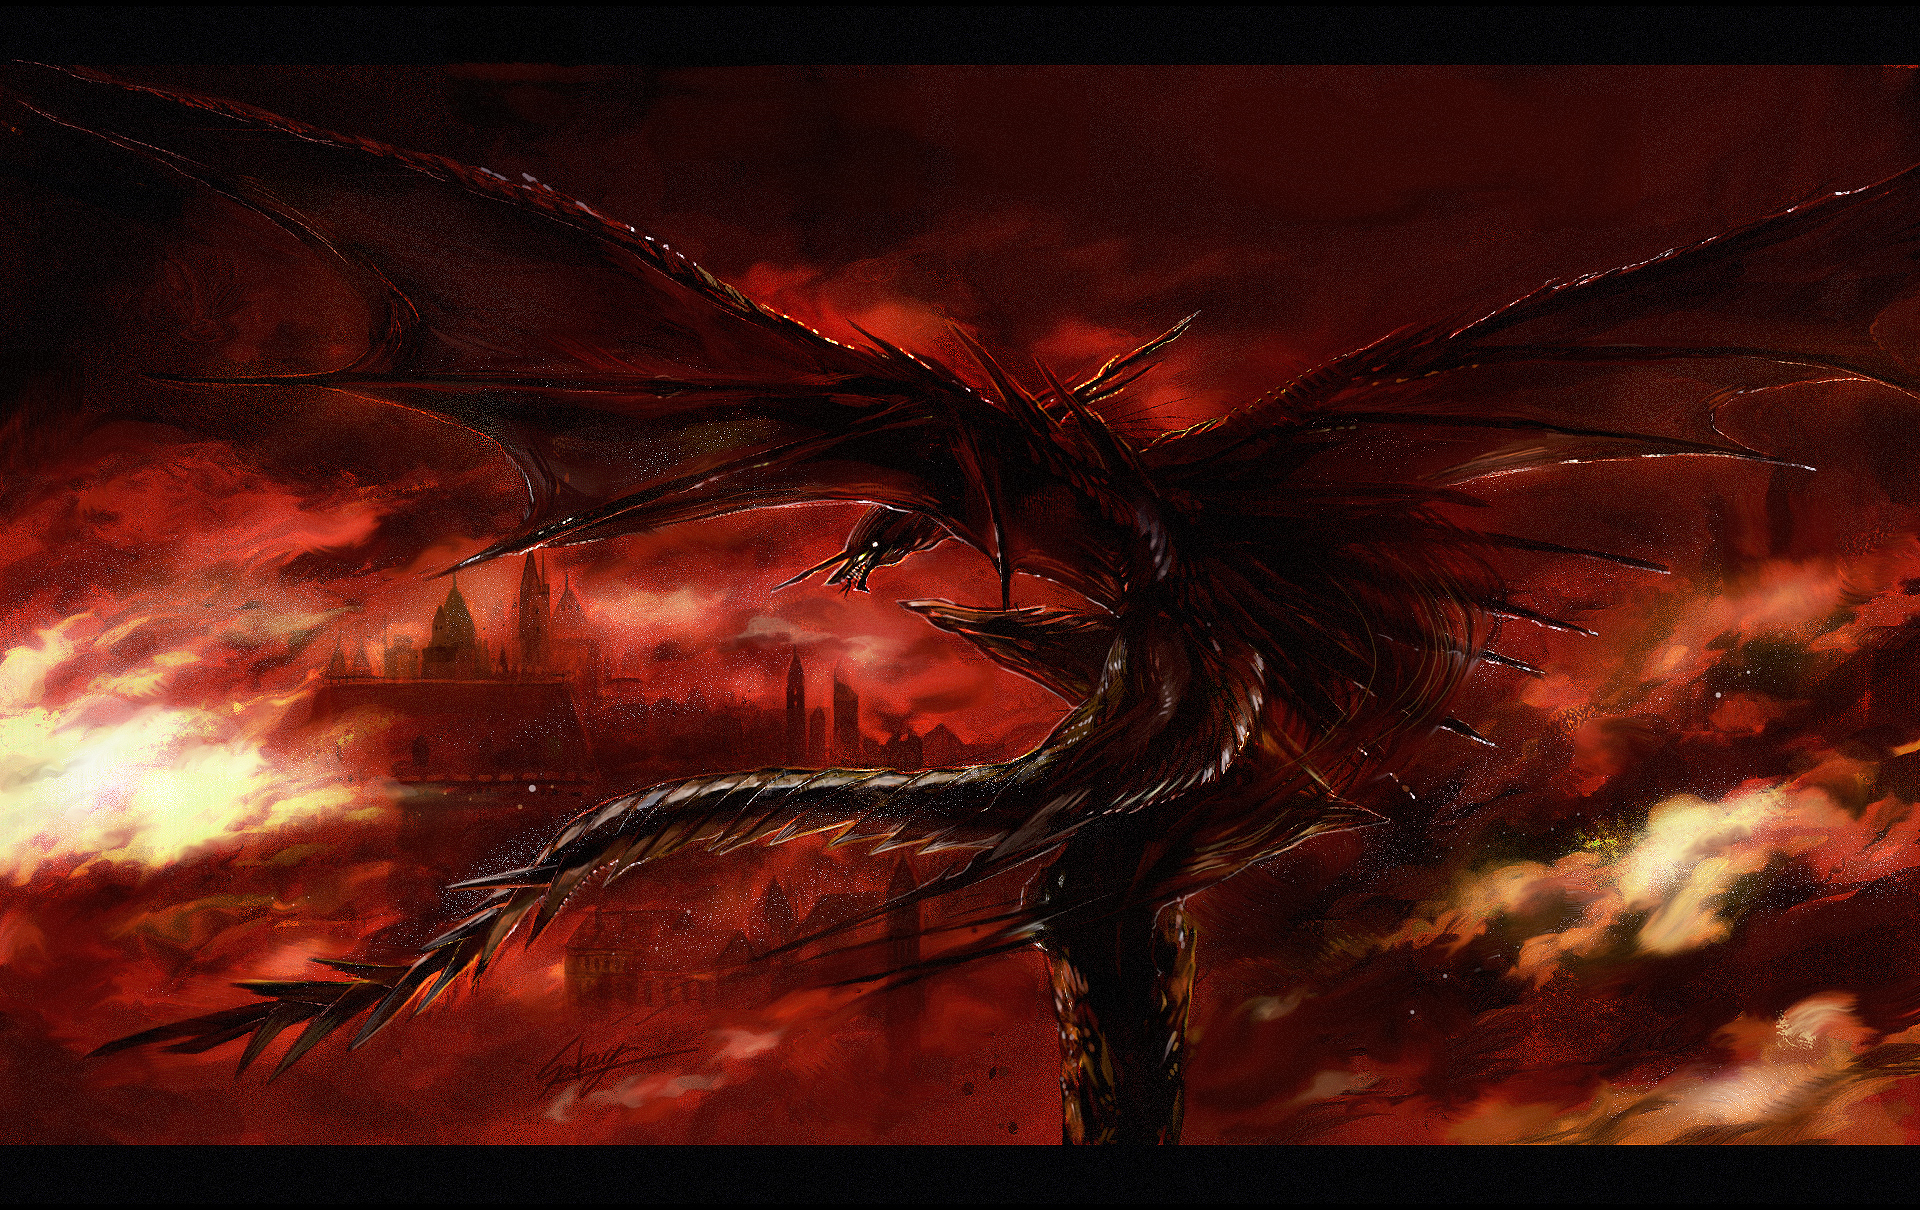 Cool Dragon Wallpapers For Desktop 3d Dragon Hd Wallpaper Background Image 1920x1210 Id